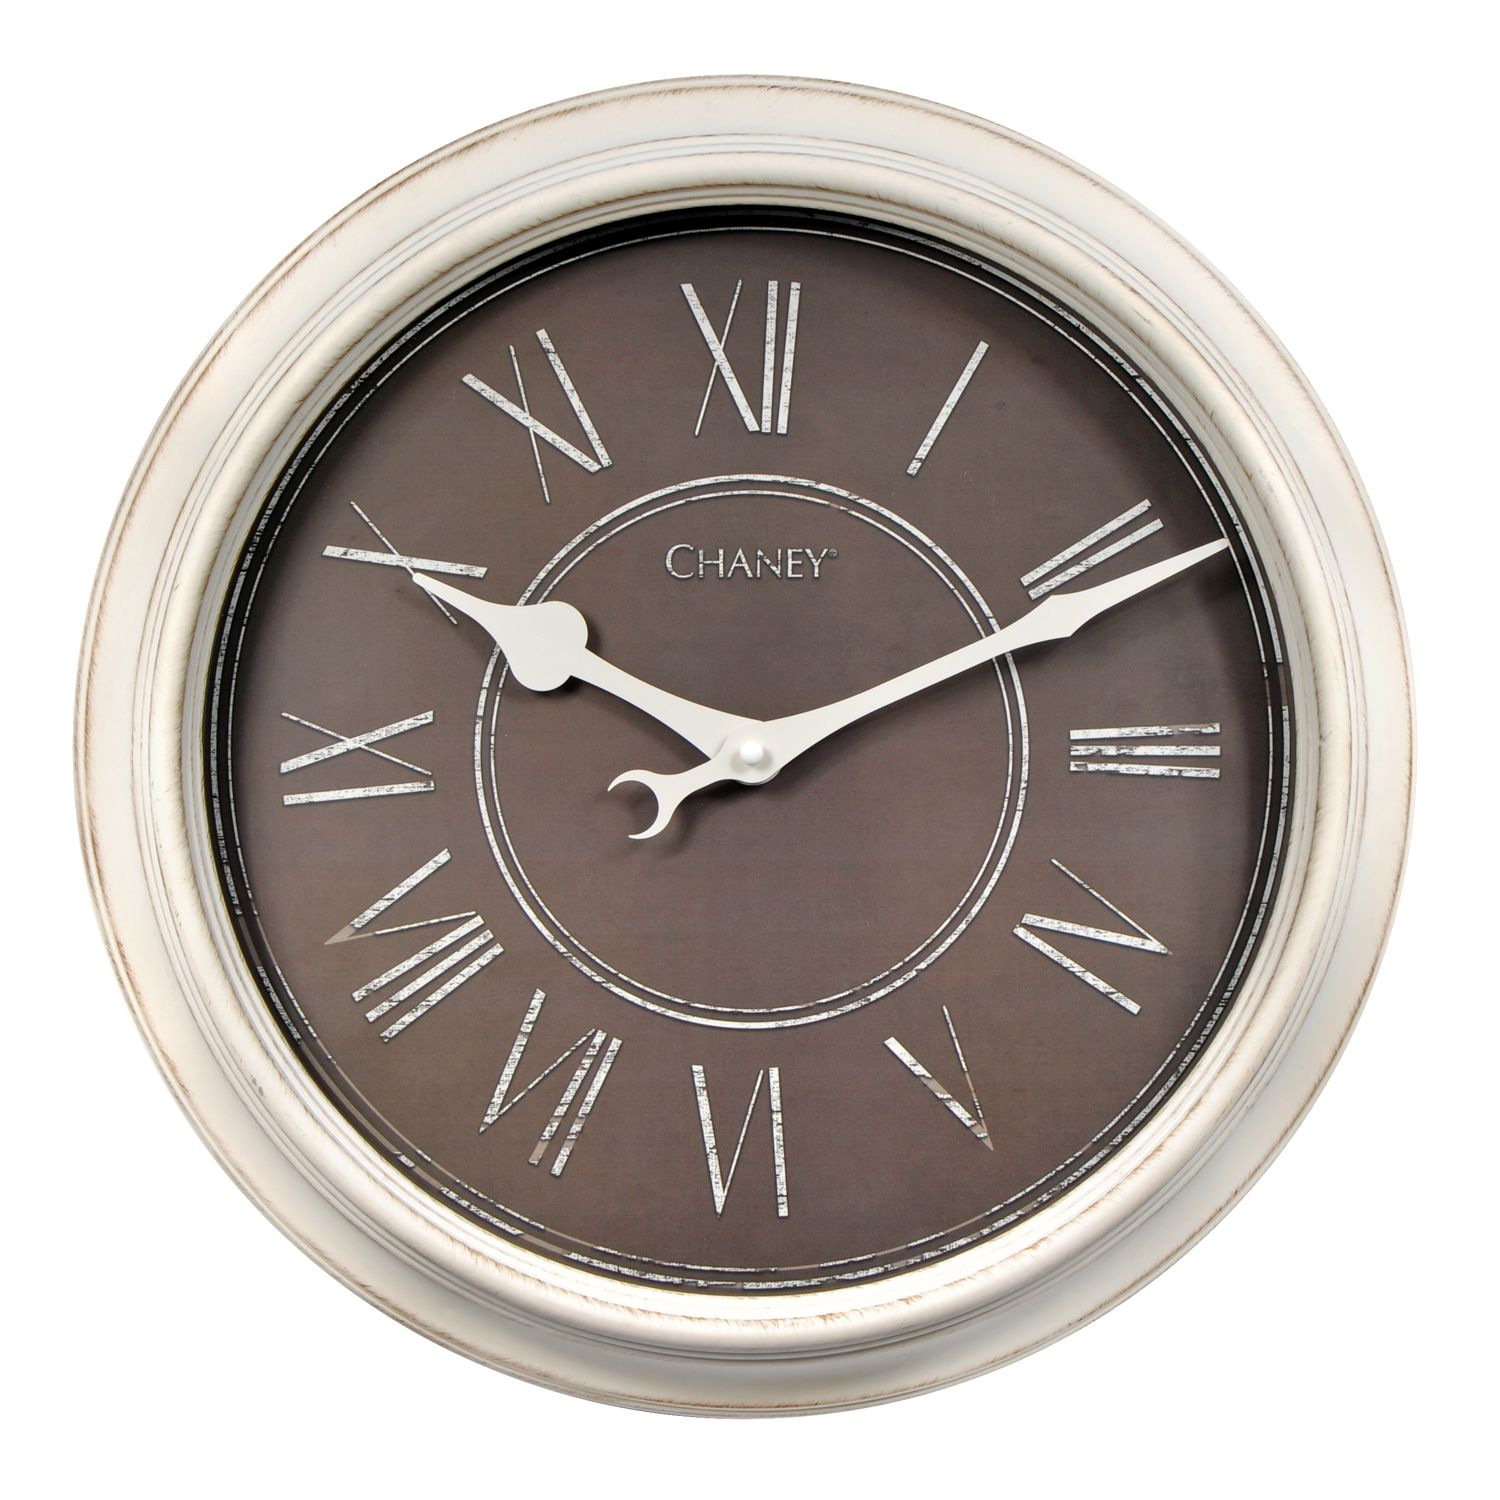 Chaney wall clock kohls 28 chaney wall clock chaney 18in wrought iron wall clock by amipublicfo Choice Image